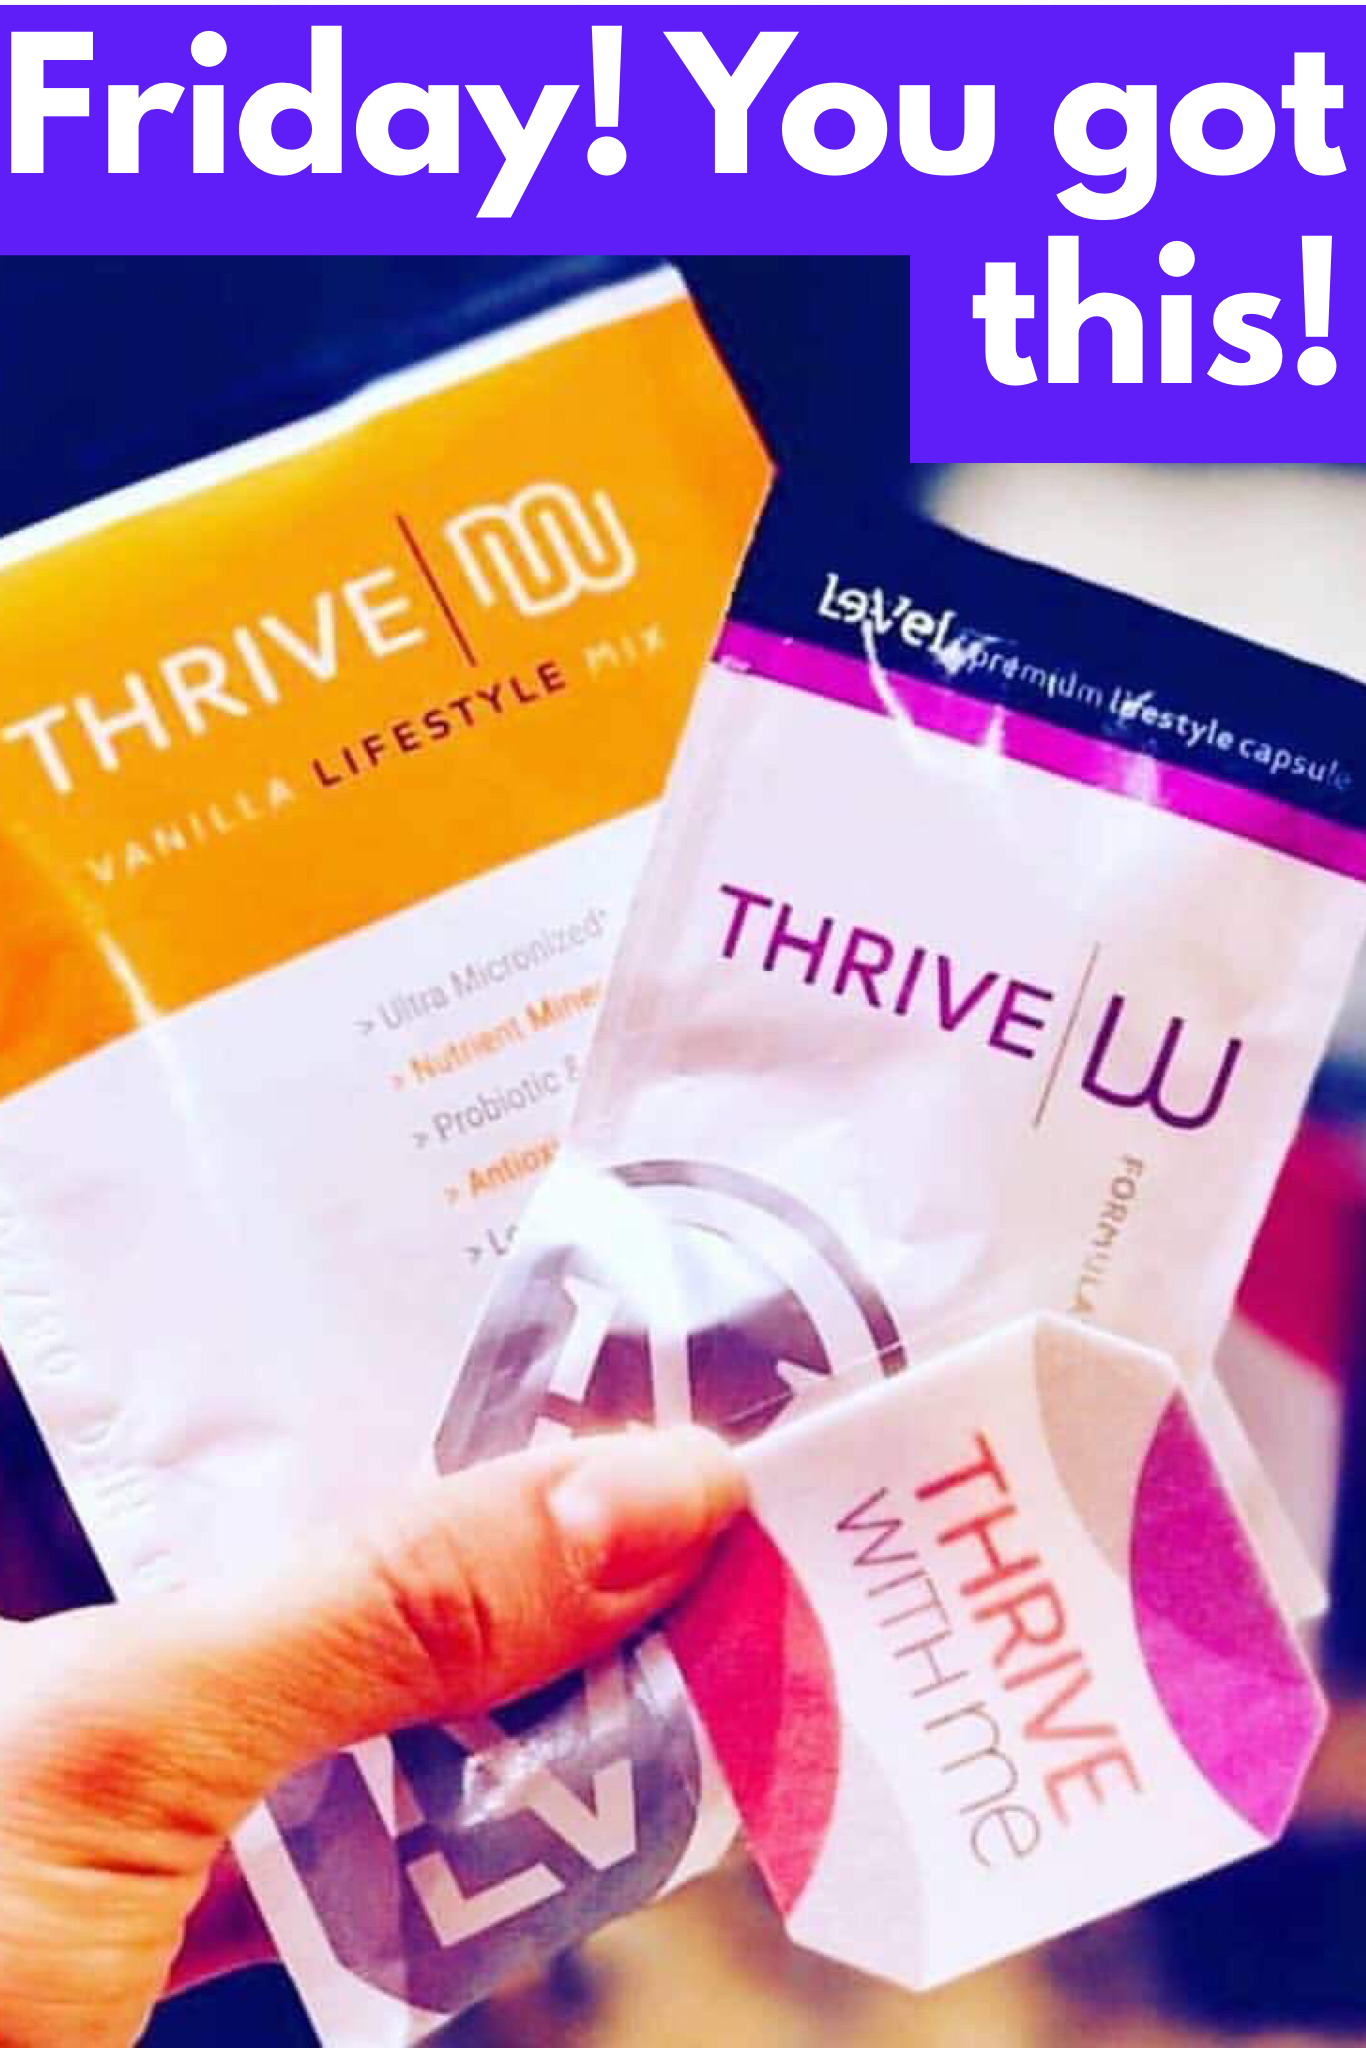 Thriving on a Friday!! Best Feeling Ever!! Ready to Rock my weekend. Premium Wearable Nutrition Weight Management Energy Health Mental Clarity Mood Support ...